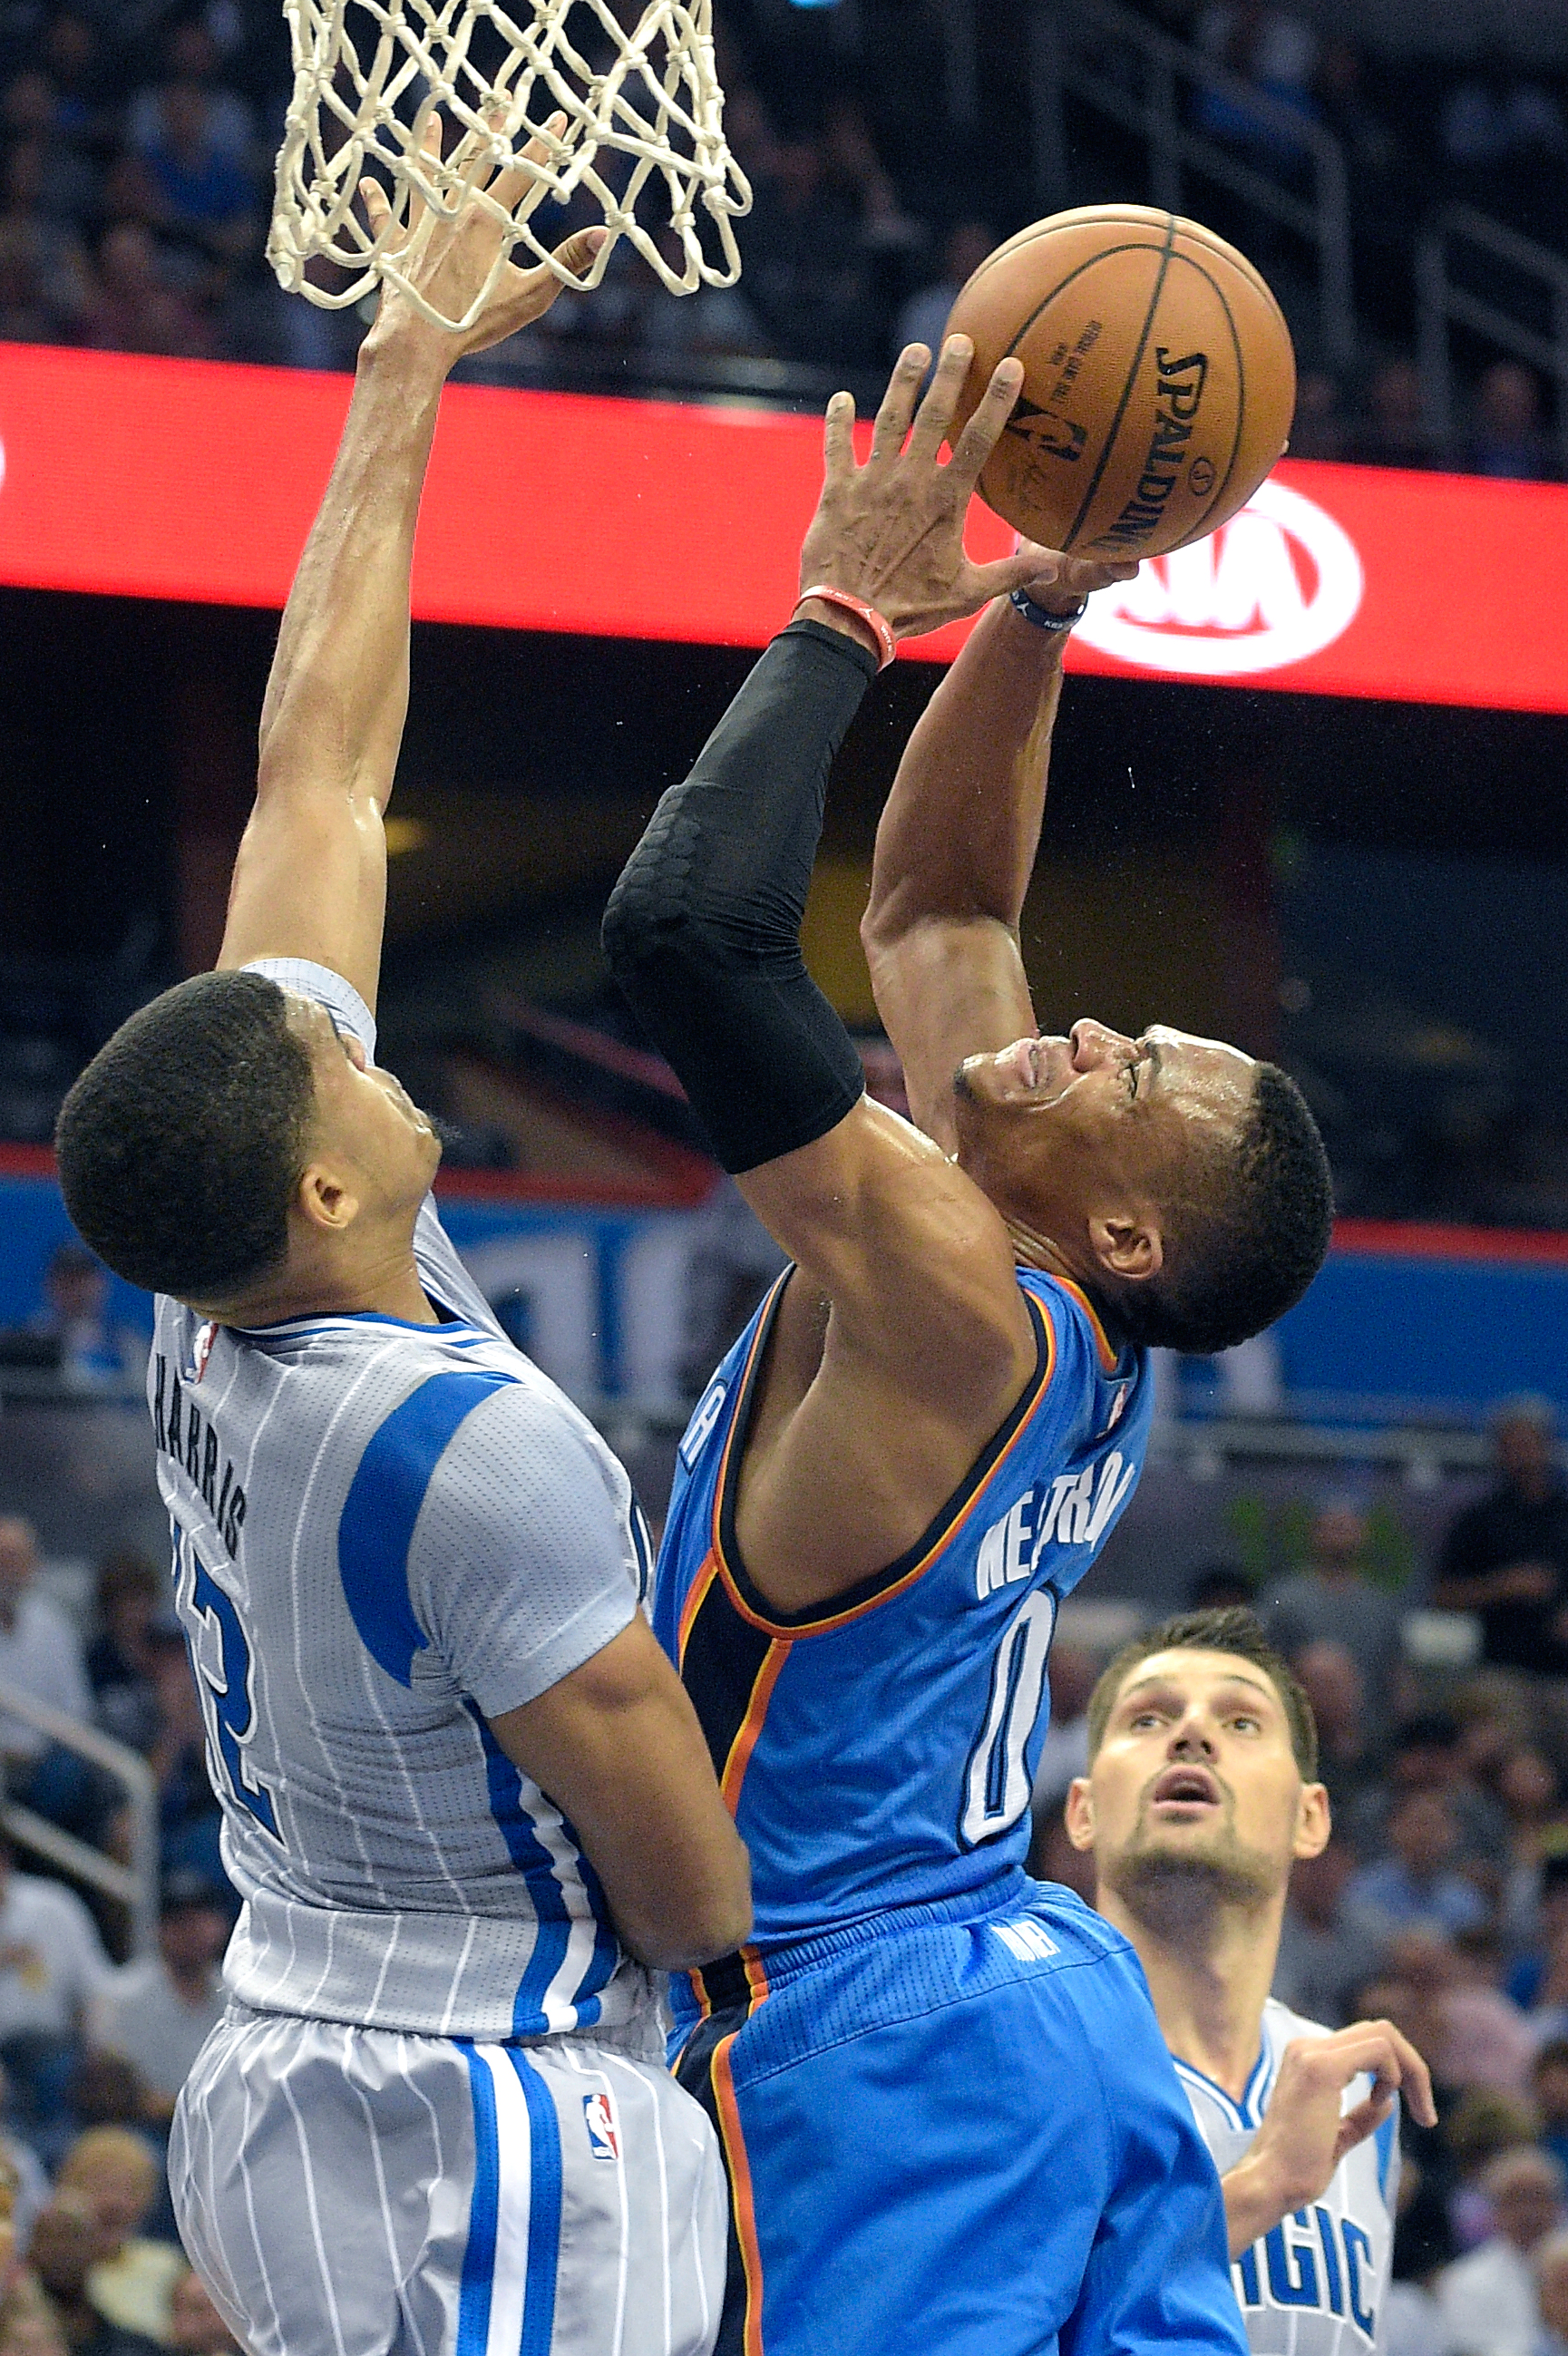 Oklahoma City Thunder guard Russell Westbrook (0) goes up to shoot between Orlando Magic forward Tobias Harris (12) and Nikola Vucevic, right, during the first half of an NBA basketball game in Orlando, Fla., Friday, Oct. 30, 2015. (AP Photo/Phelan M. Ebe